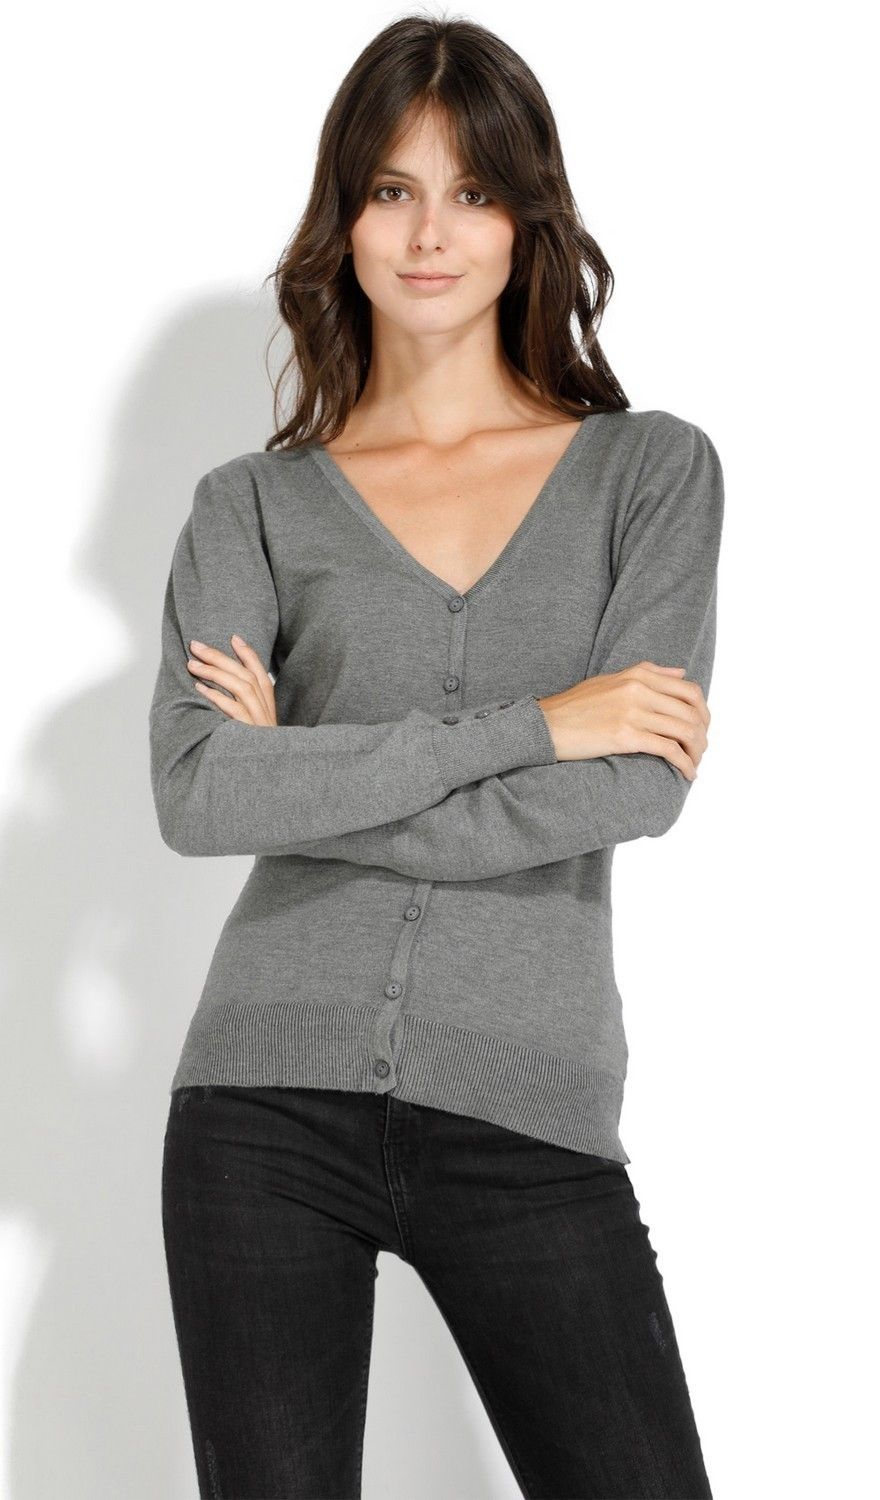 C&JO V-neck Cardigan with Buttoned Sleeves in Grey